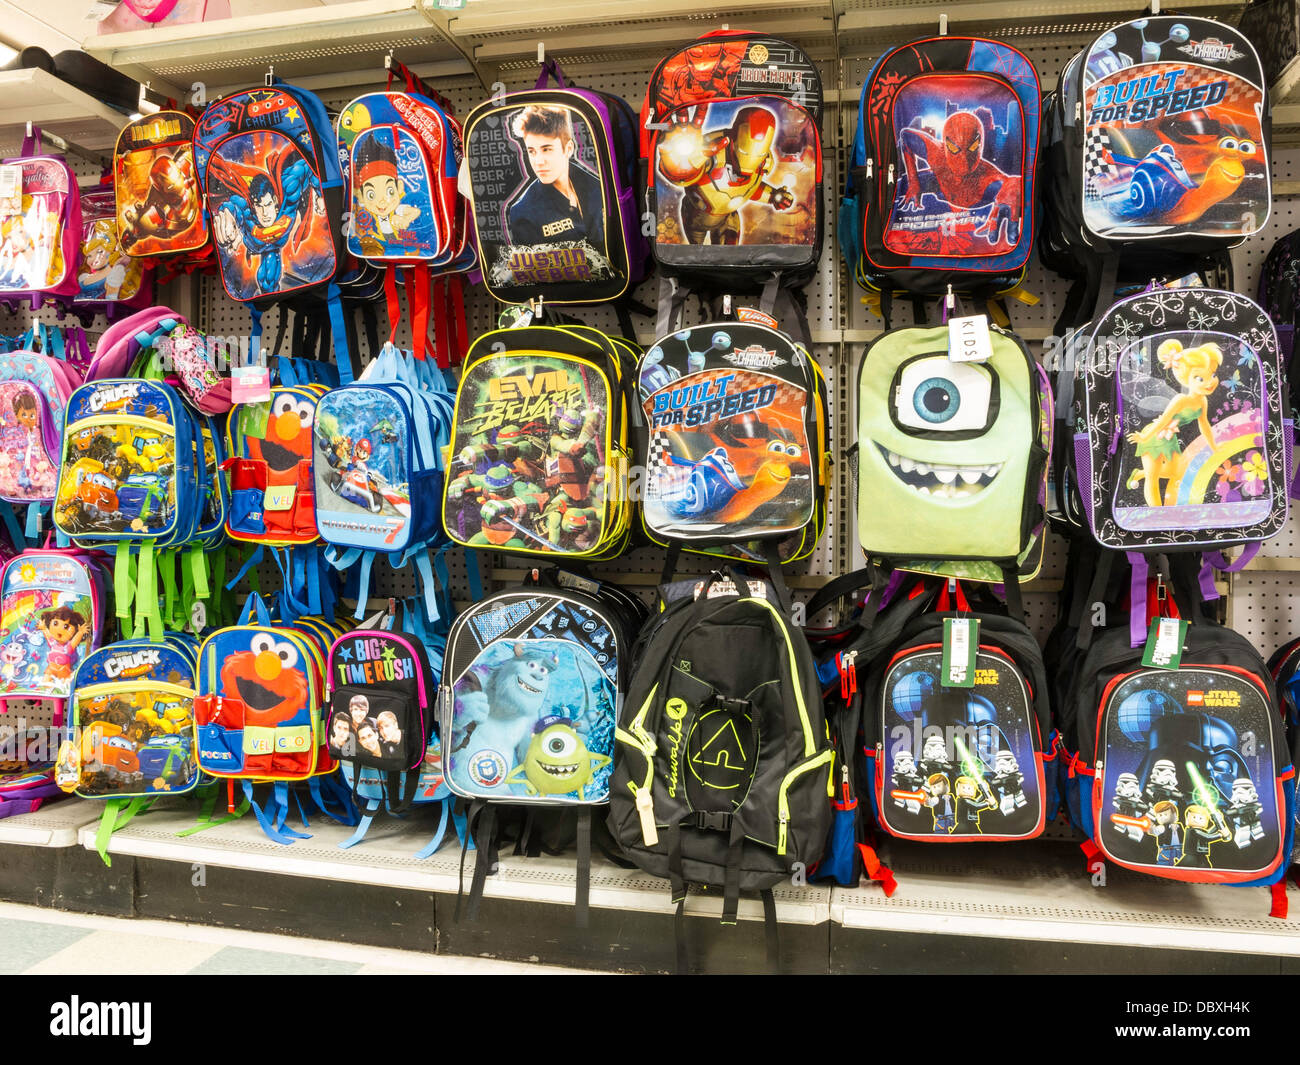 Backpack Display in Kmart, NYC Stock Photo  58976531 - Alamy 2ba4e33015